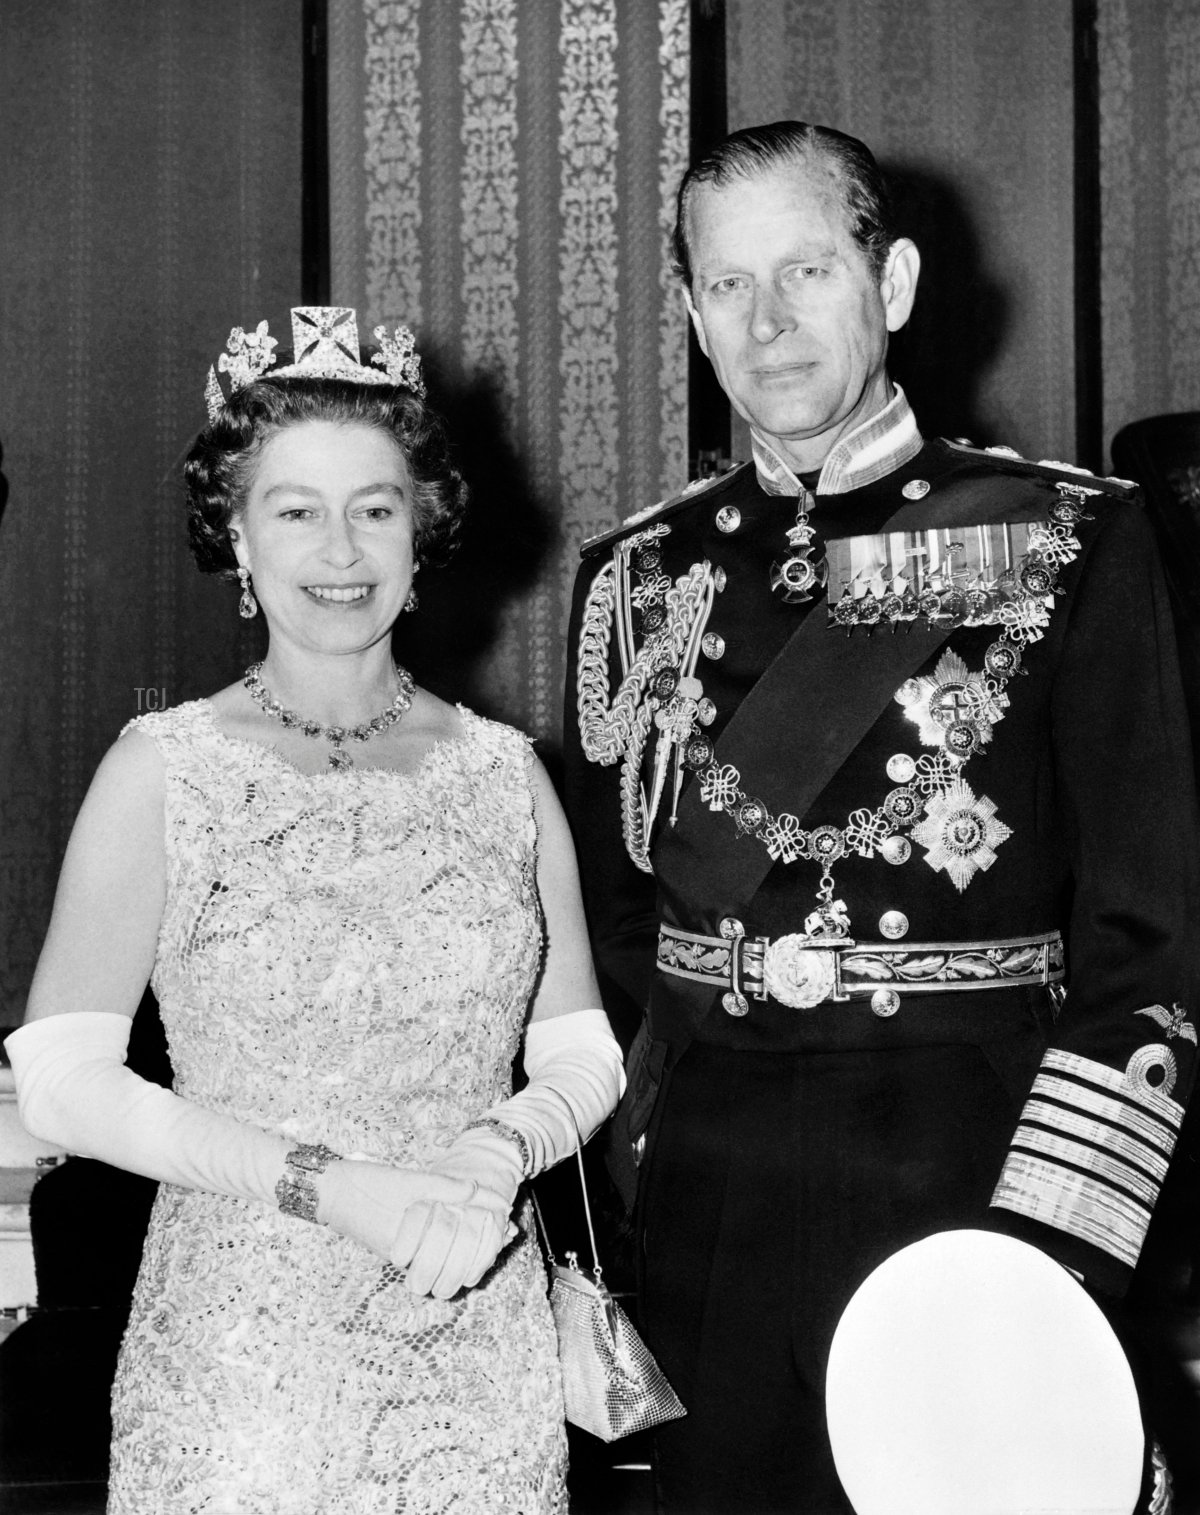 Official photo taken on November 3, 1972 shows Britain's Queen Elizabeth II, wearing the George IV State Diadem, diamond tiara on British and Commonwealth stamps, and Prince Philip, Duke of Edinburgh, on the occasion of their 25th wedding anniversary